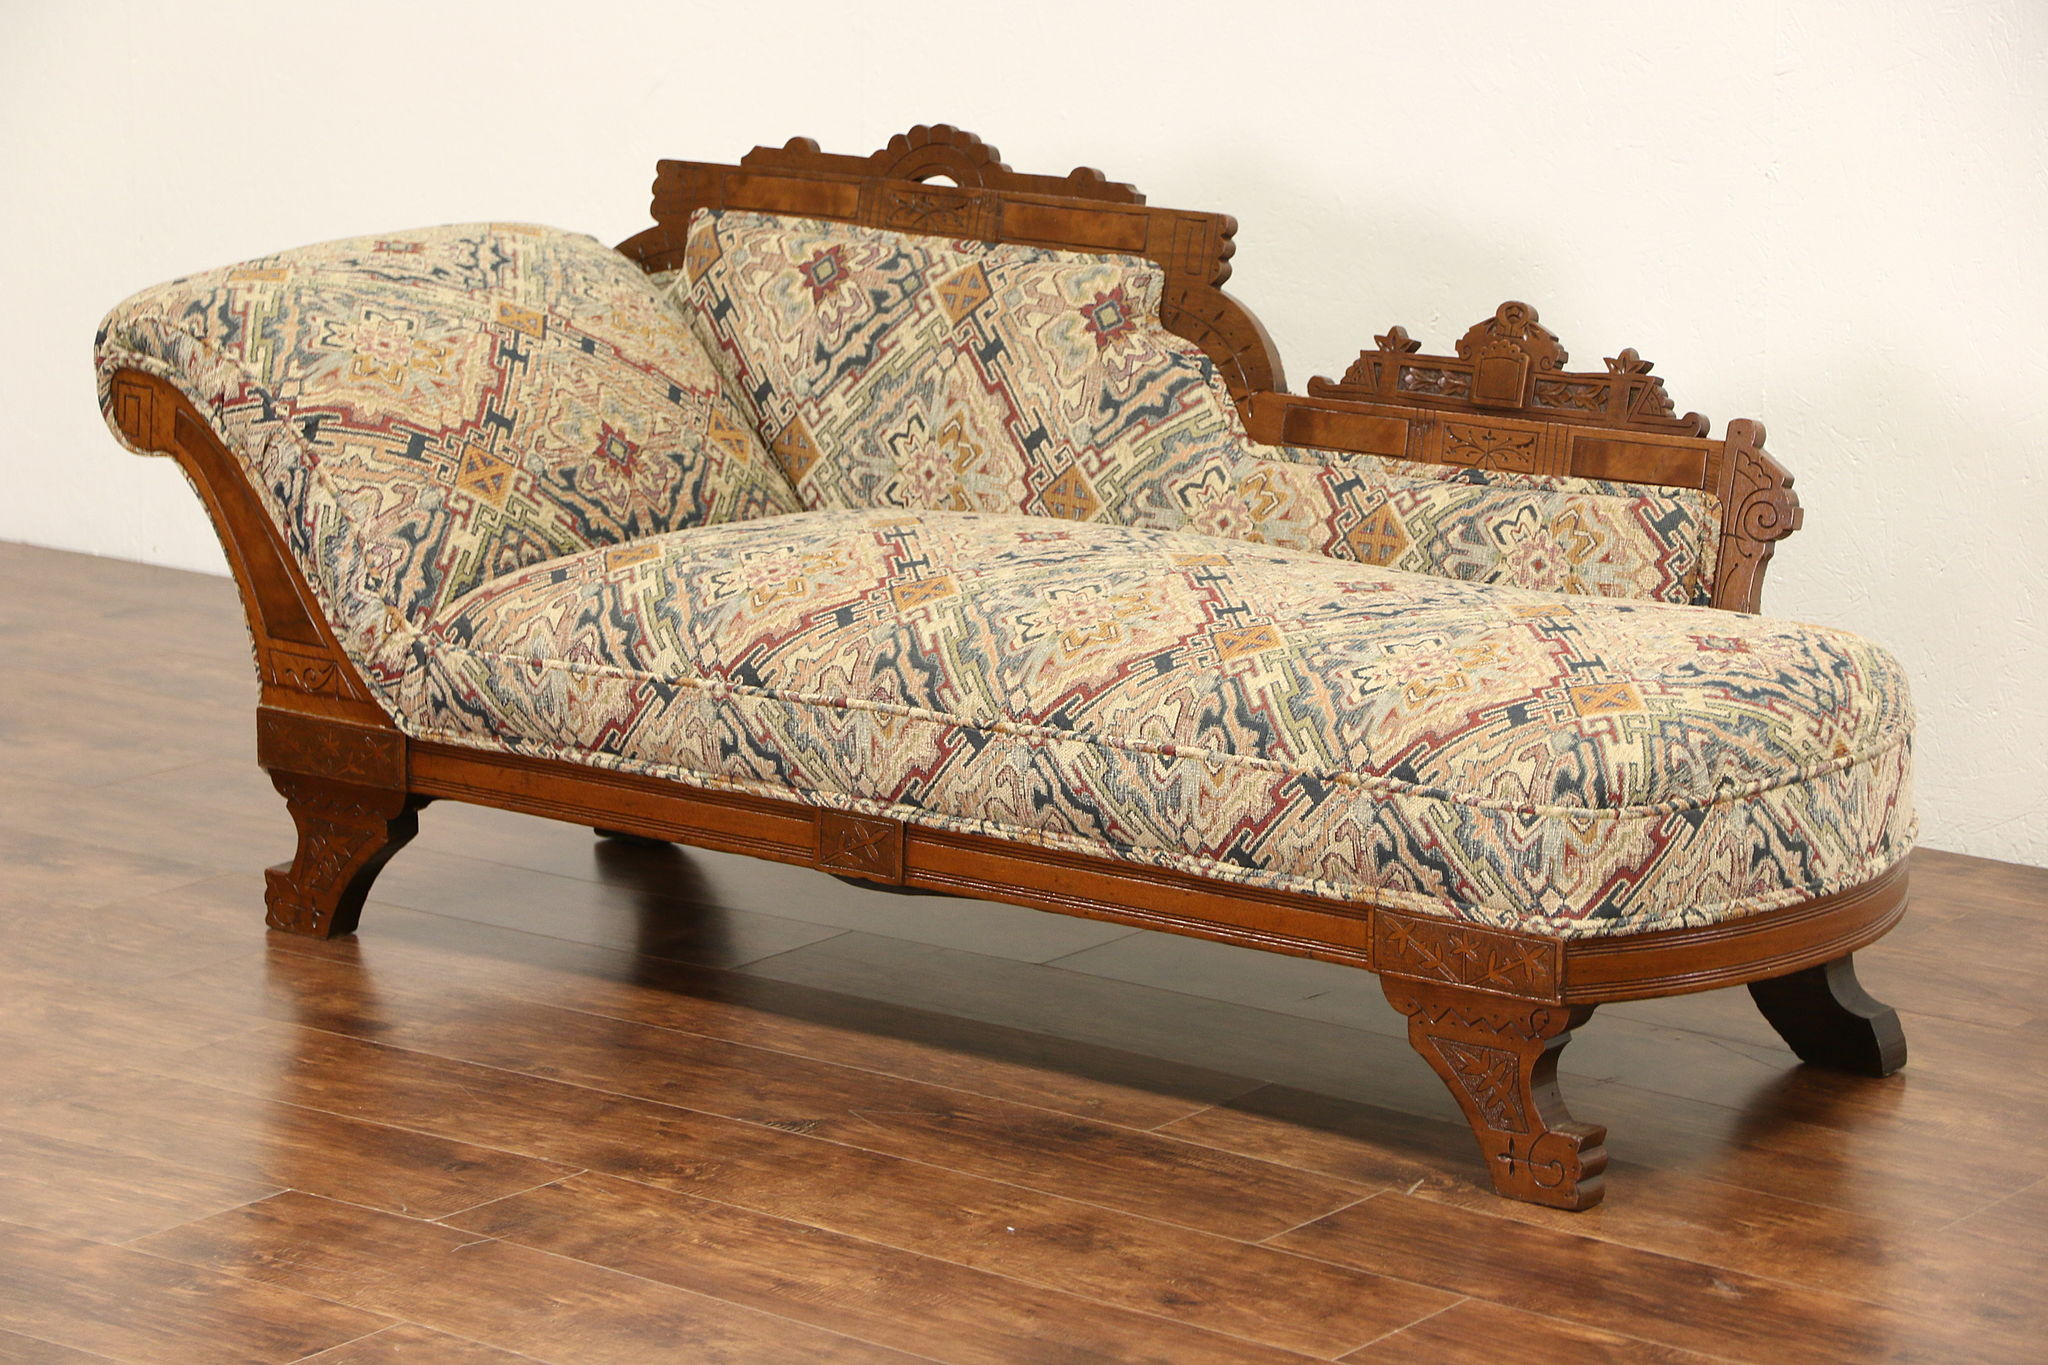 Sold victorian eastlake 1880 antique chaise lounge or for Antiques chaise lounge